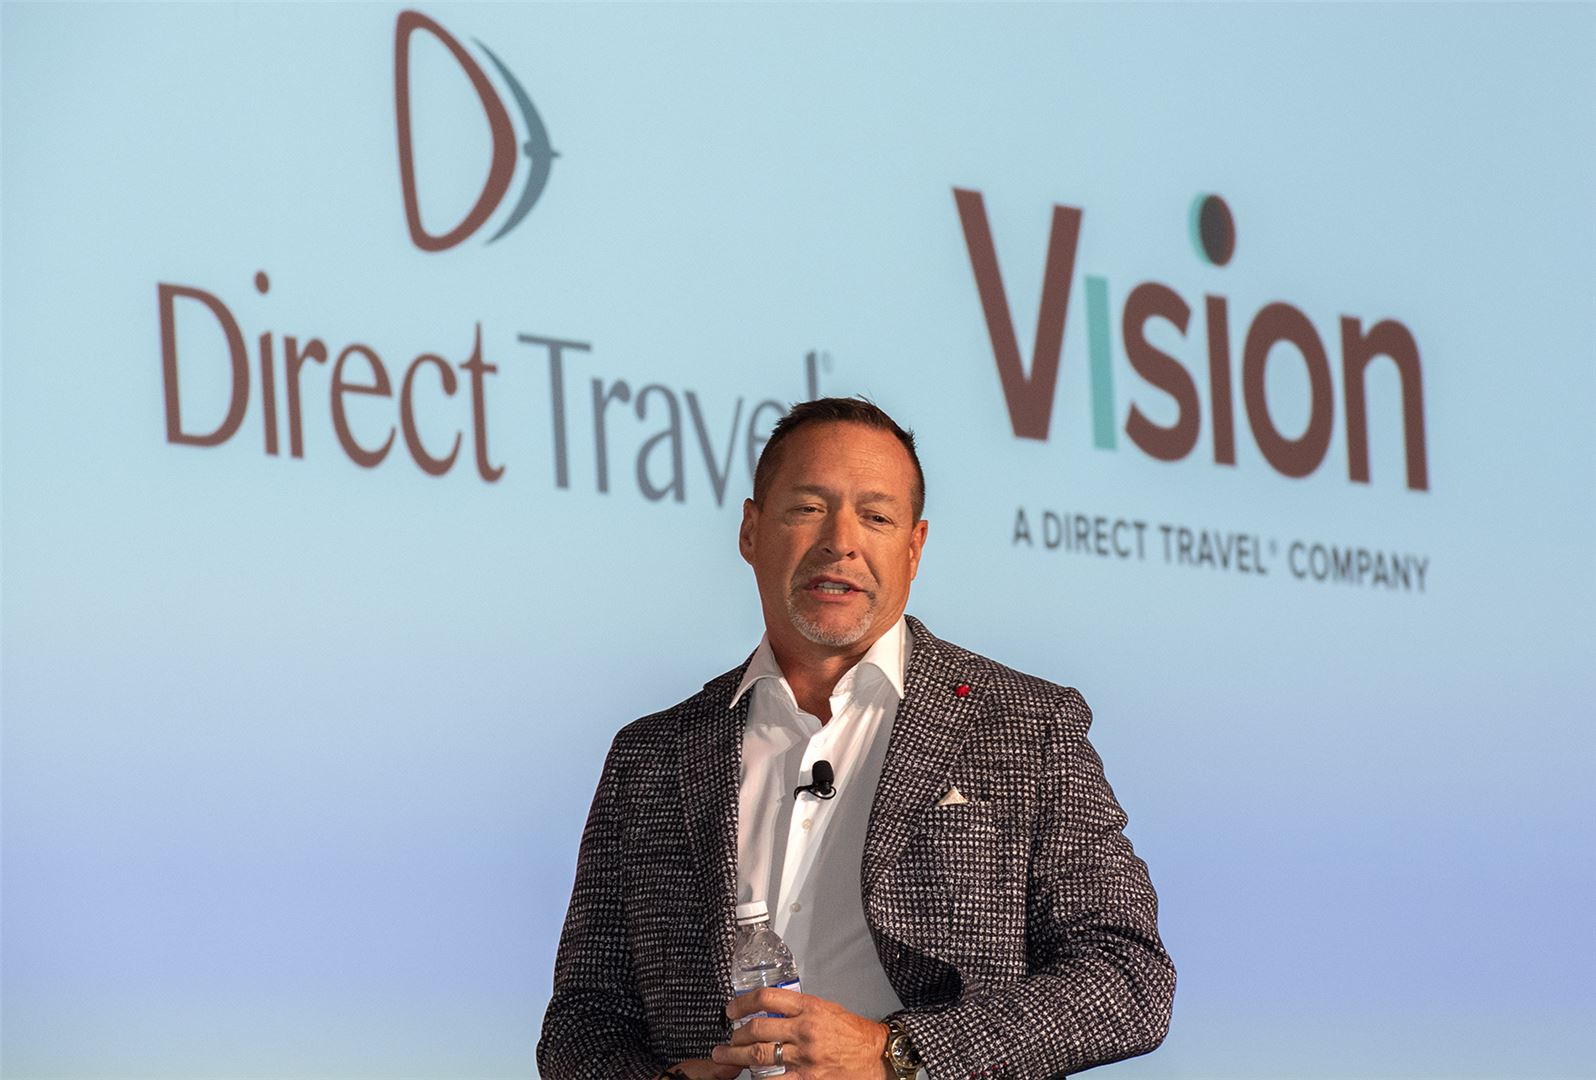 Vision Travel Announces Direct Travel Rebrand in Canada